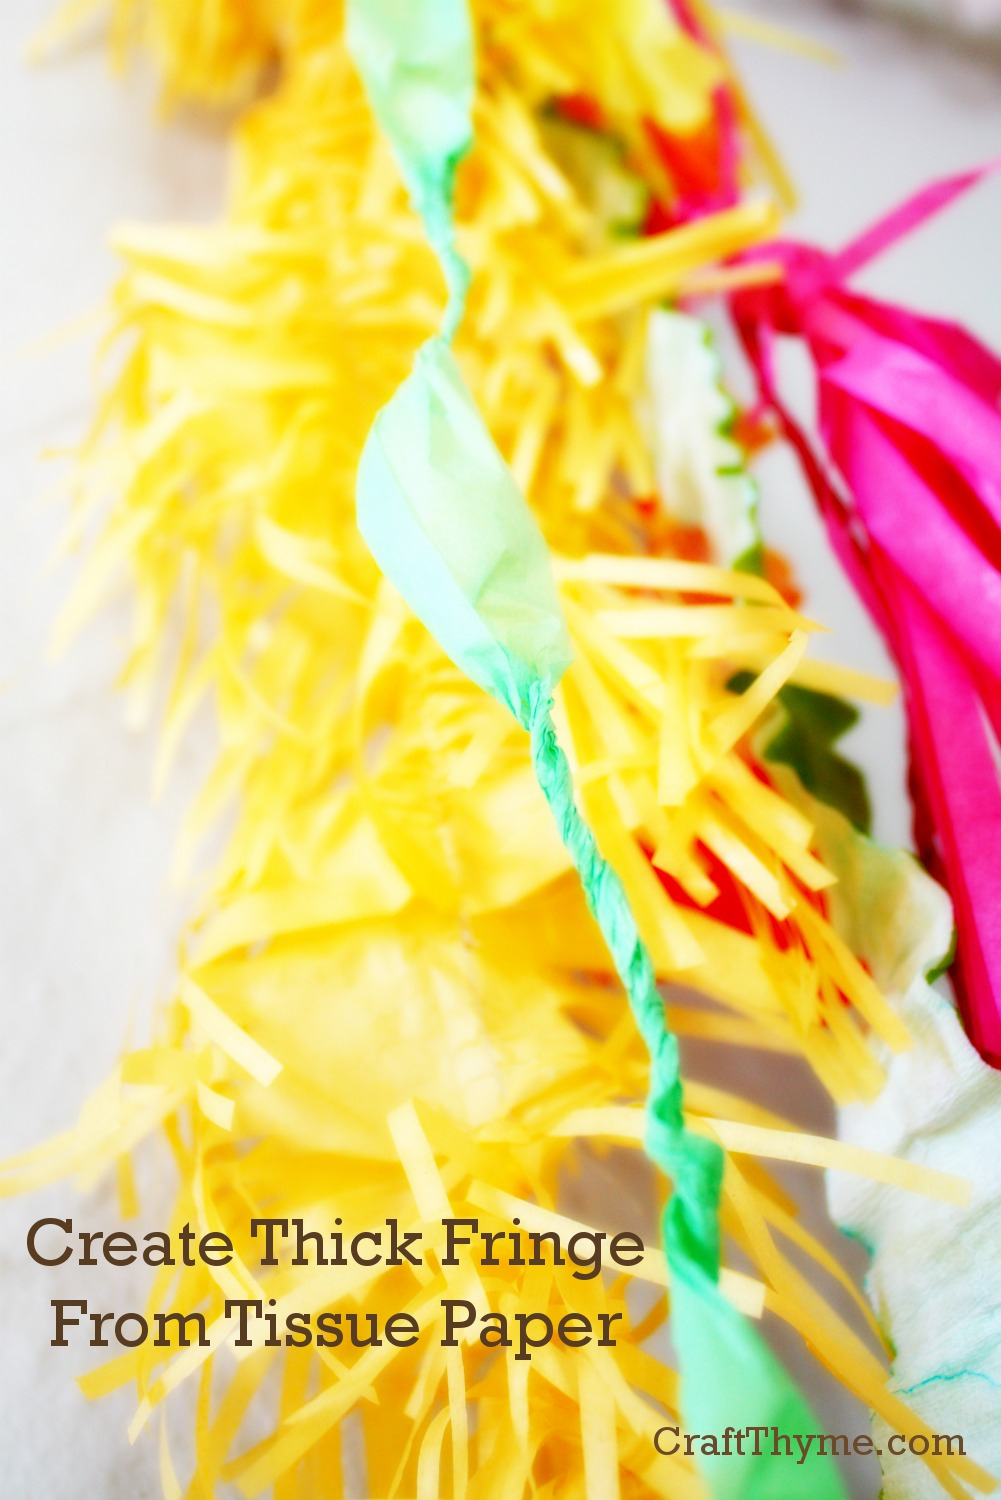 How To Make Thick Tissue Paper Fringe Craft Thyme